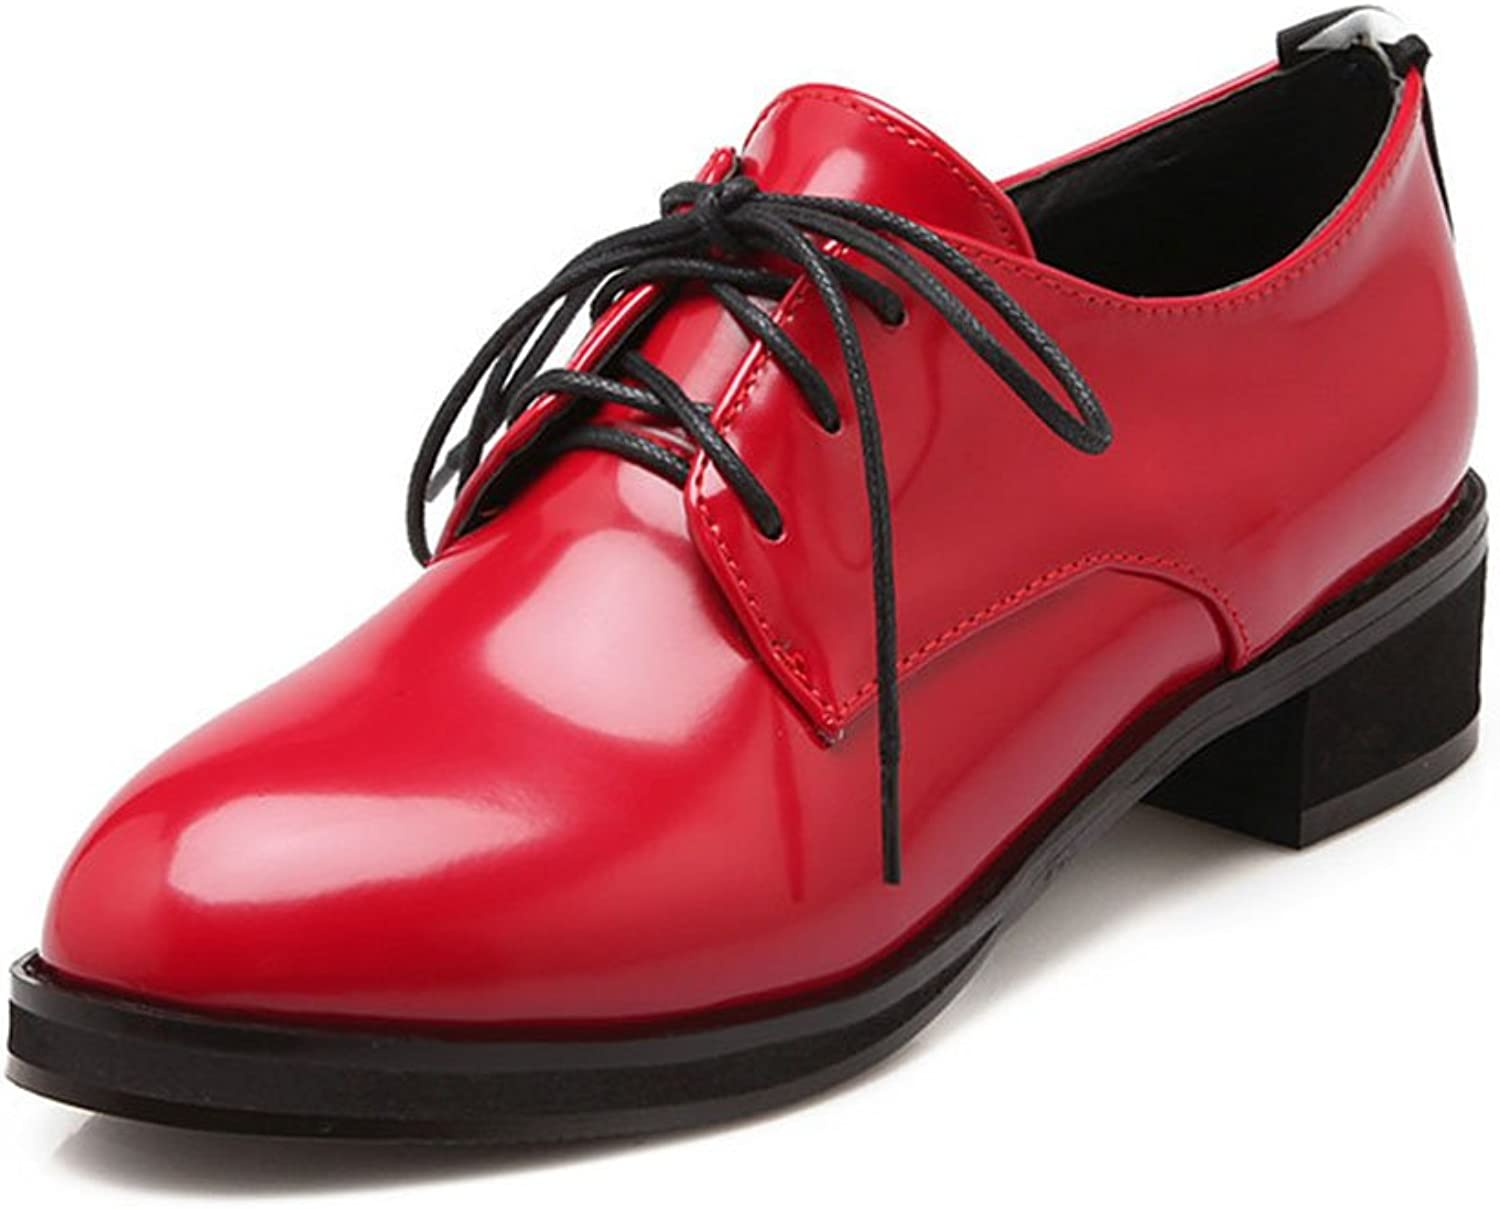 CHFSO Women's Elegant Pointed Toe Lace Up Patent Leather Flats Oxfords shoes